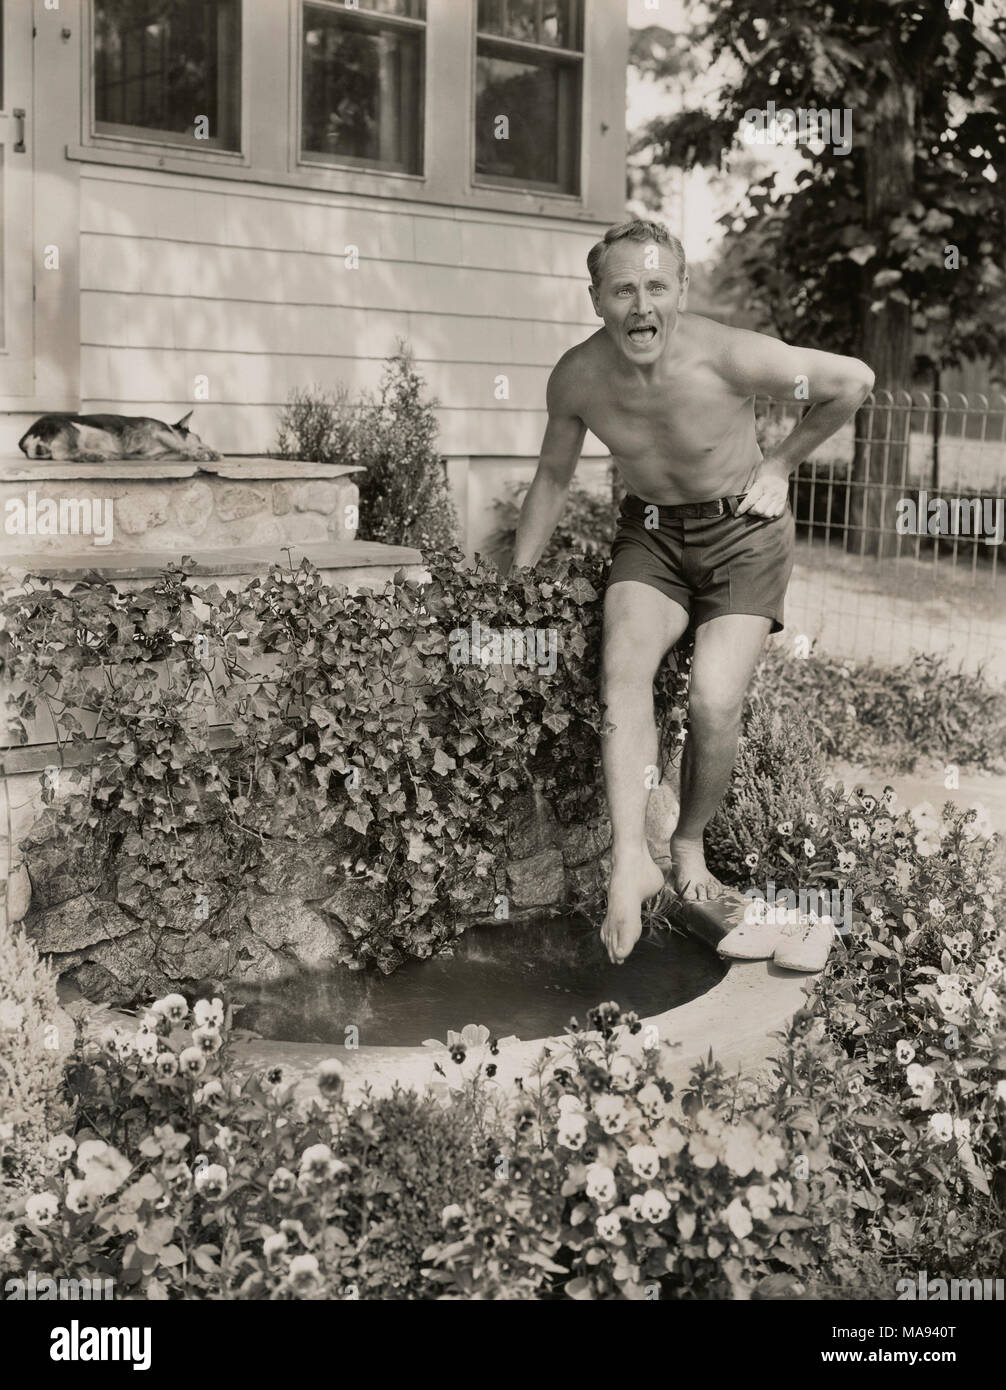 Charles Ruggles, Publicity Portrait Testing the Water of Aquarium at his Home, East Setauket, New York, USA, by Shalitt for Paramount Pictures, 1930's - Stock Image